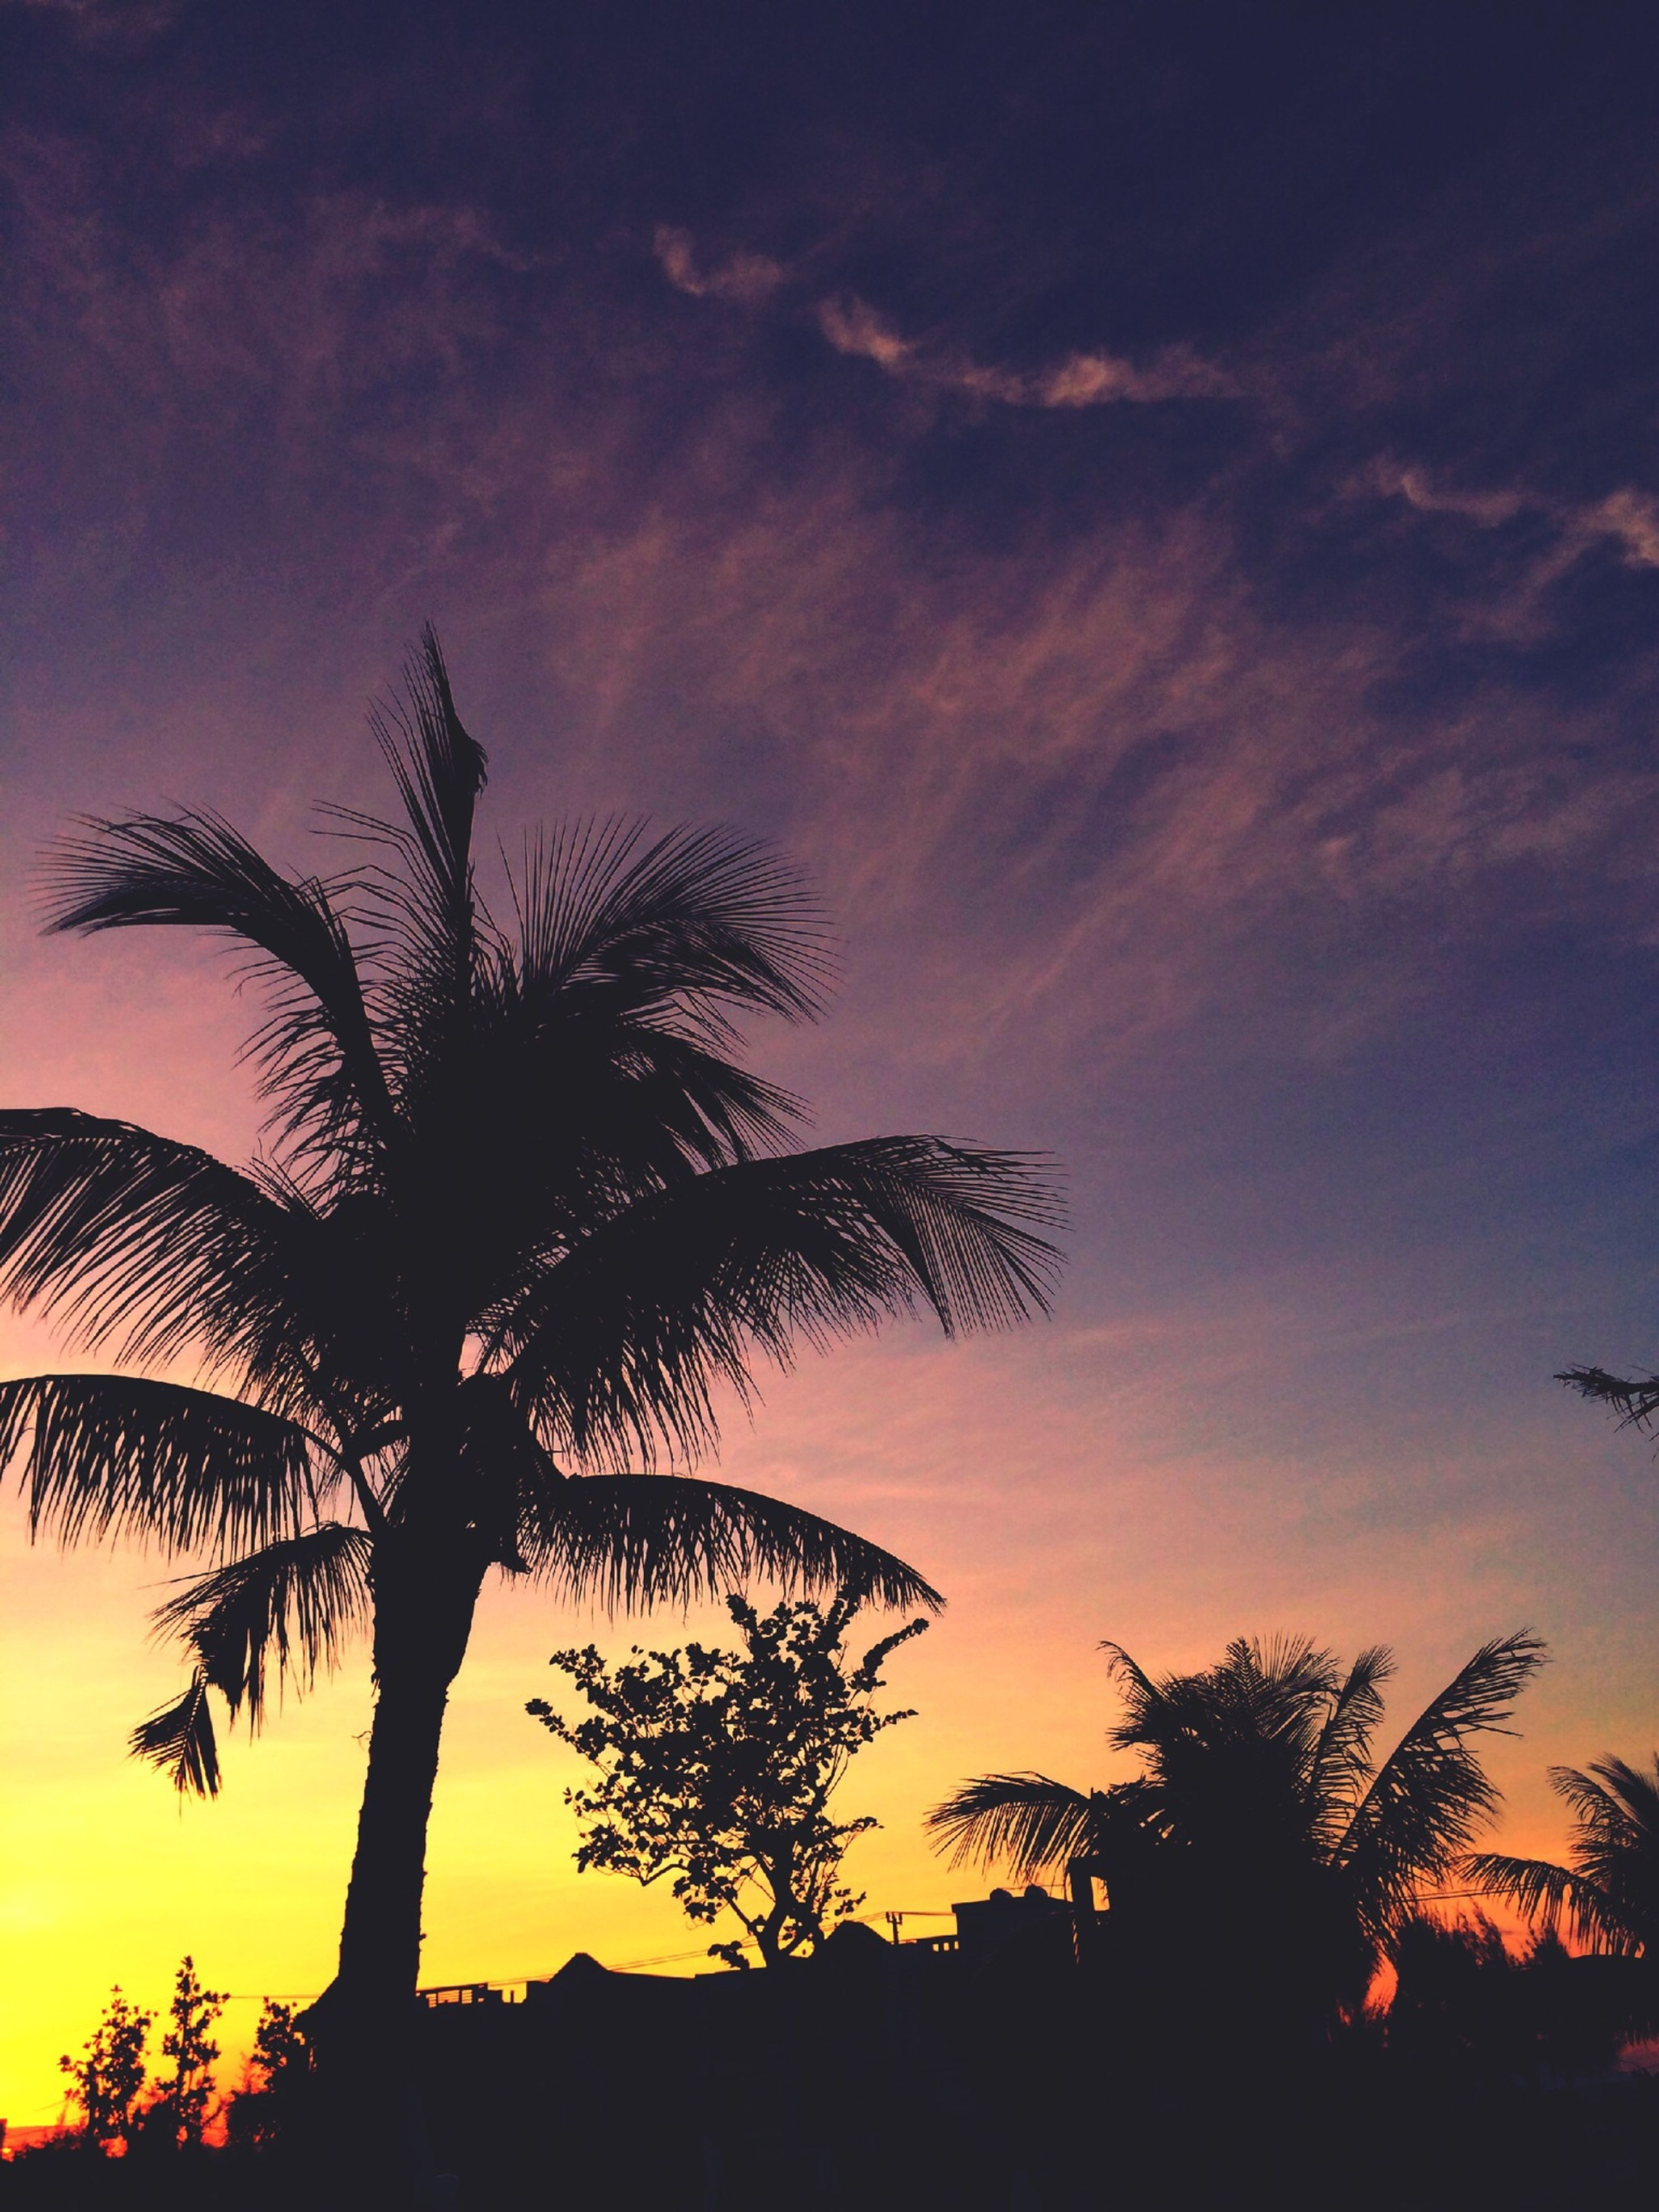 sunset, silhouette, tree, sky, tranquility, beauty in nature, tranquil scene, scenics, orange color, palm tree, nature, low angle view, idyllic, cloud - sky, growth, dramatic sky, tree trunk, branch, outline, cloud